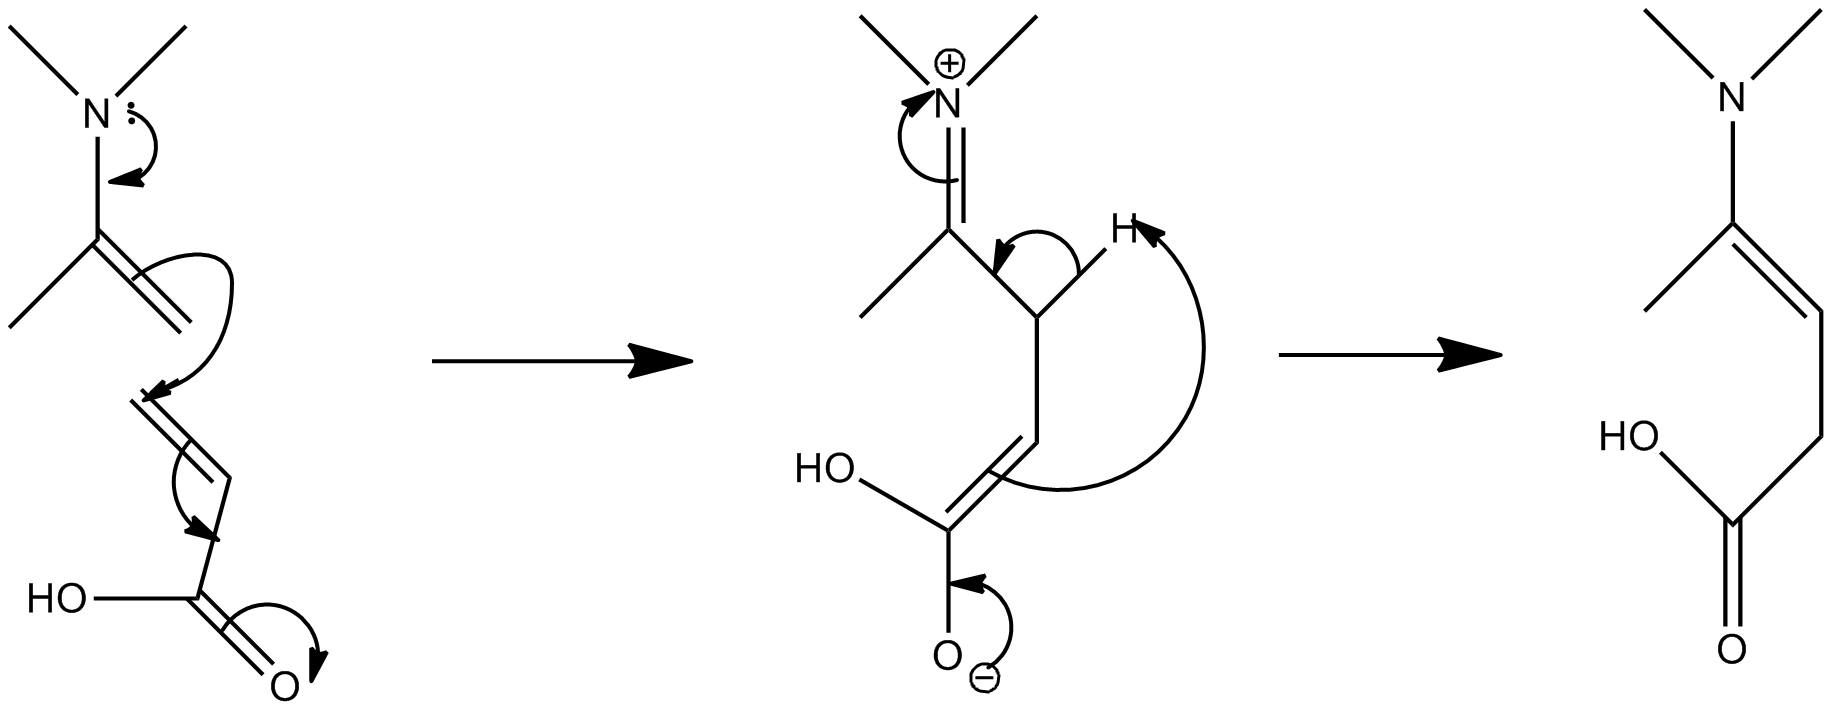 Enamine Reaction Mechanism